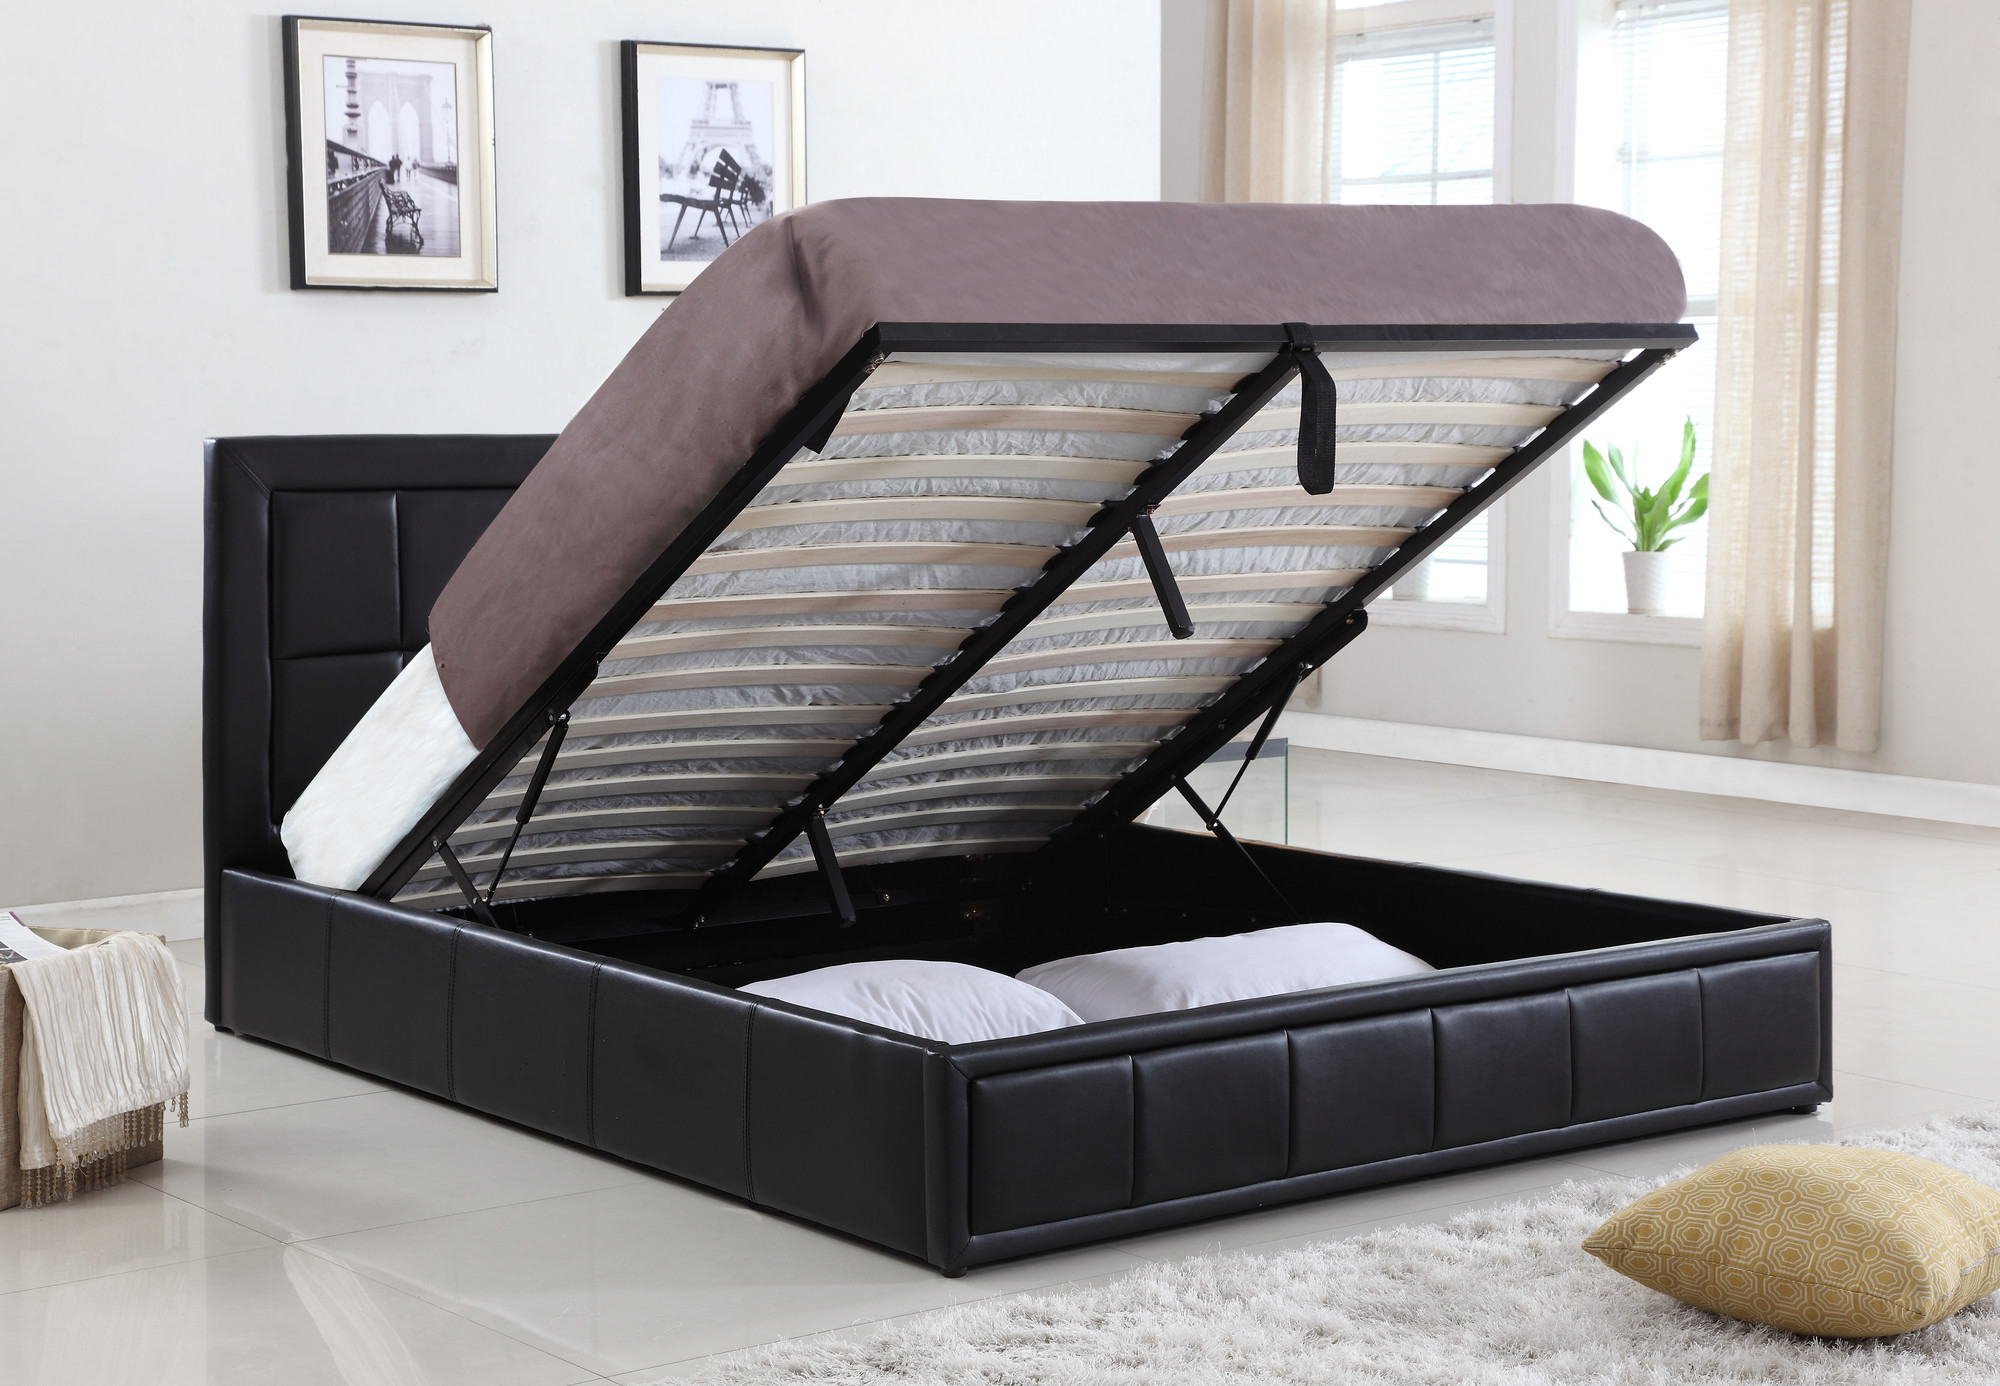 Lift Storage Bed New Pu Leather Queen Size Gas Lift Storage Bed Ebay